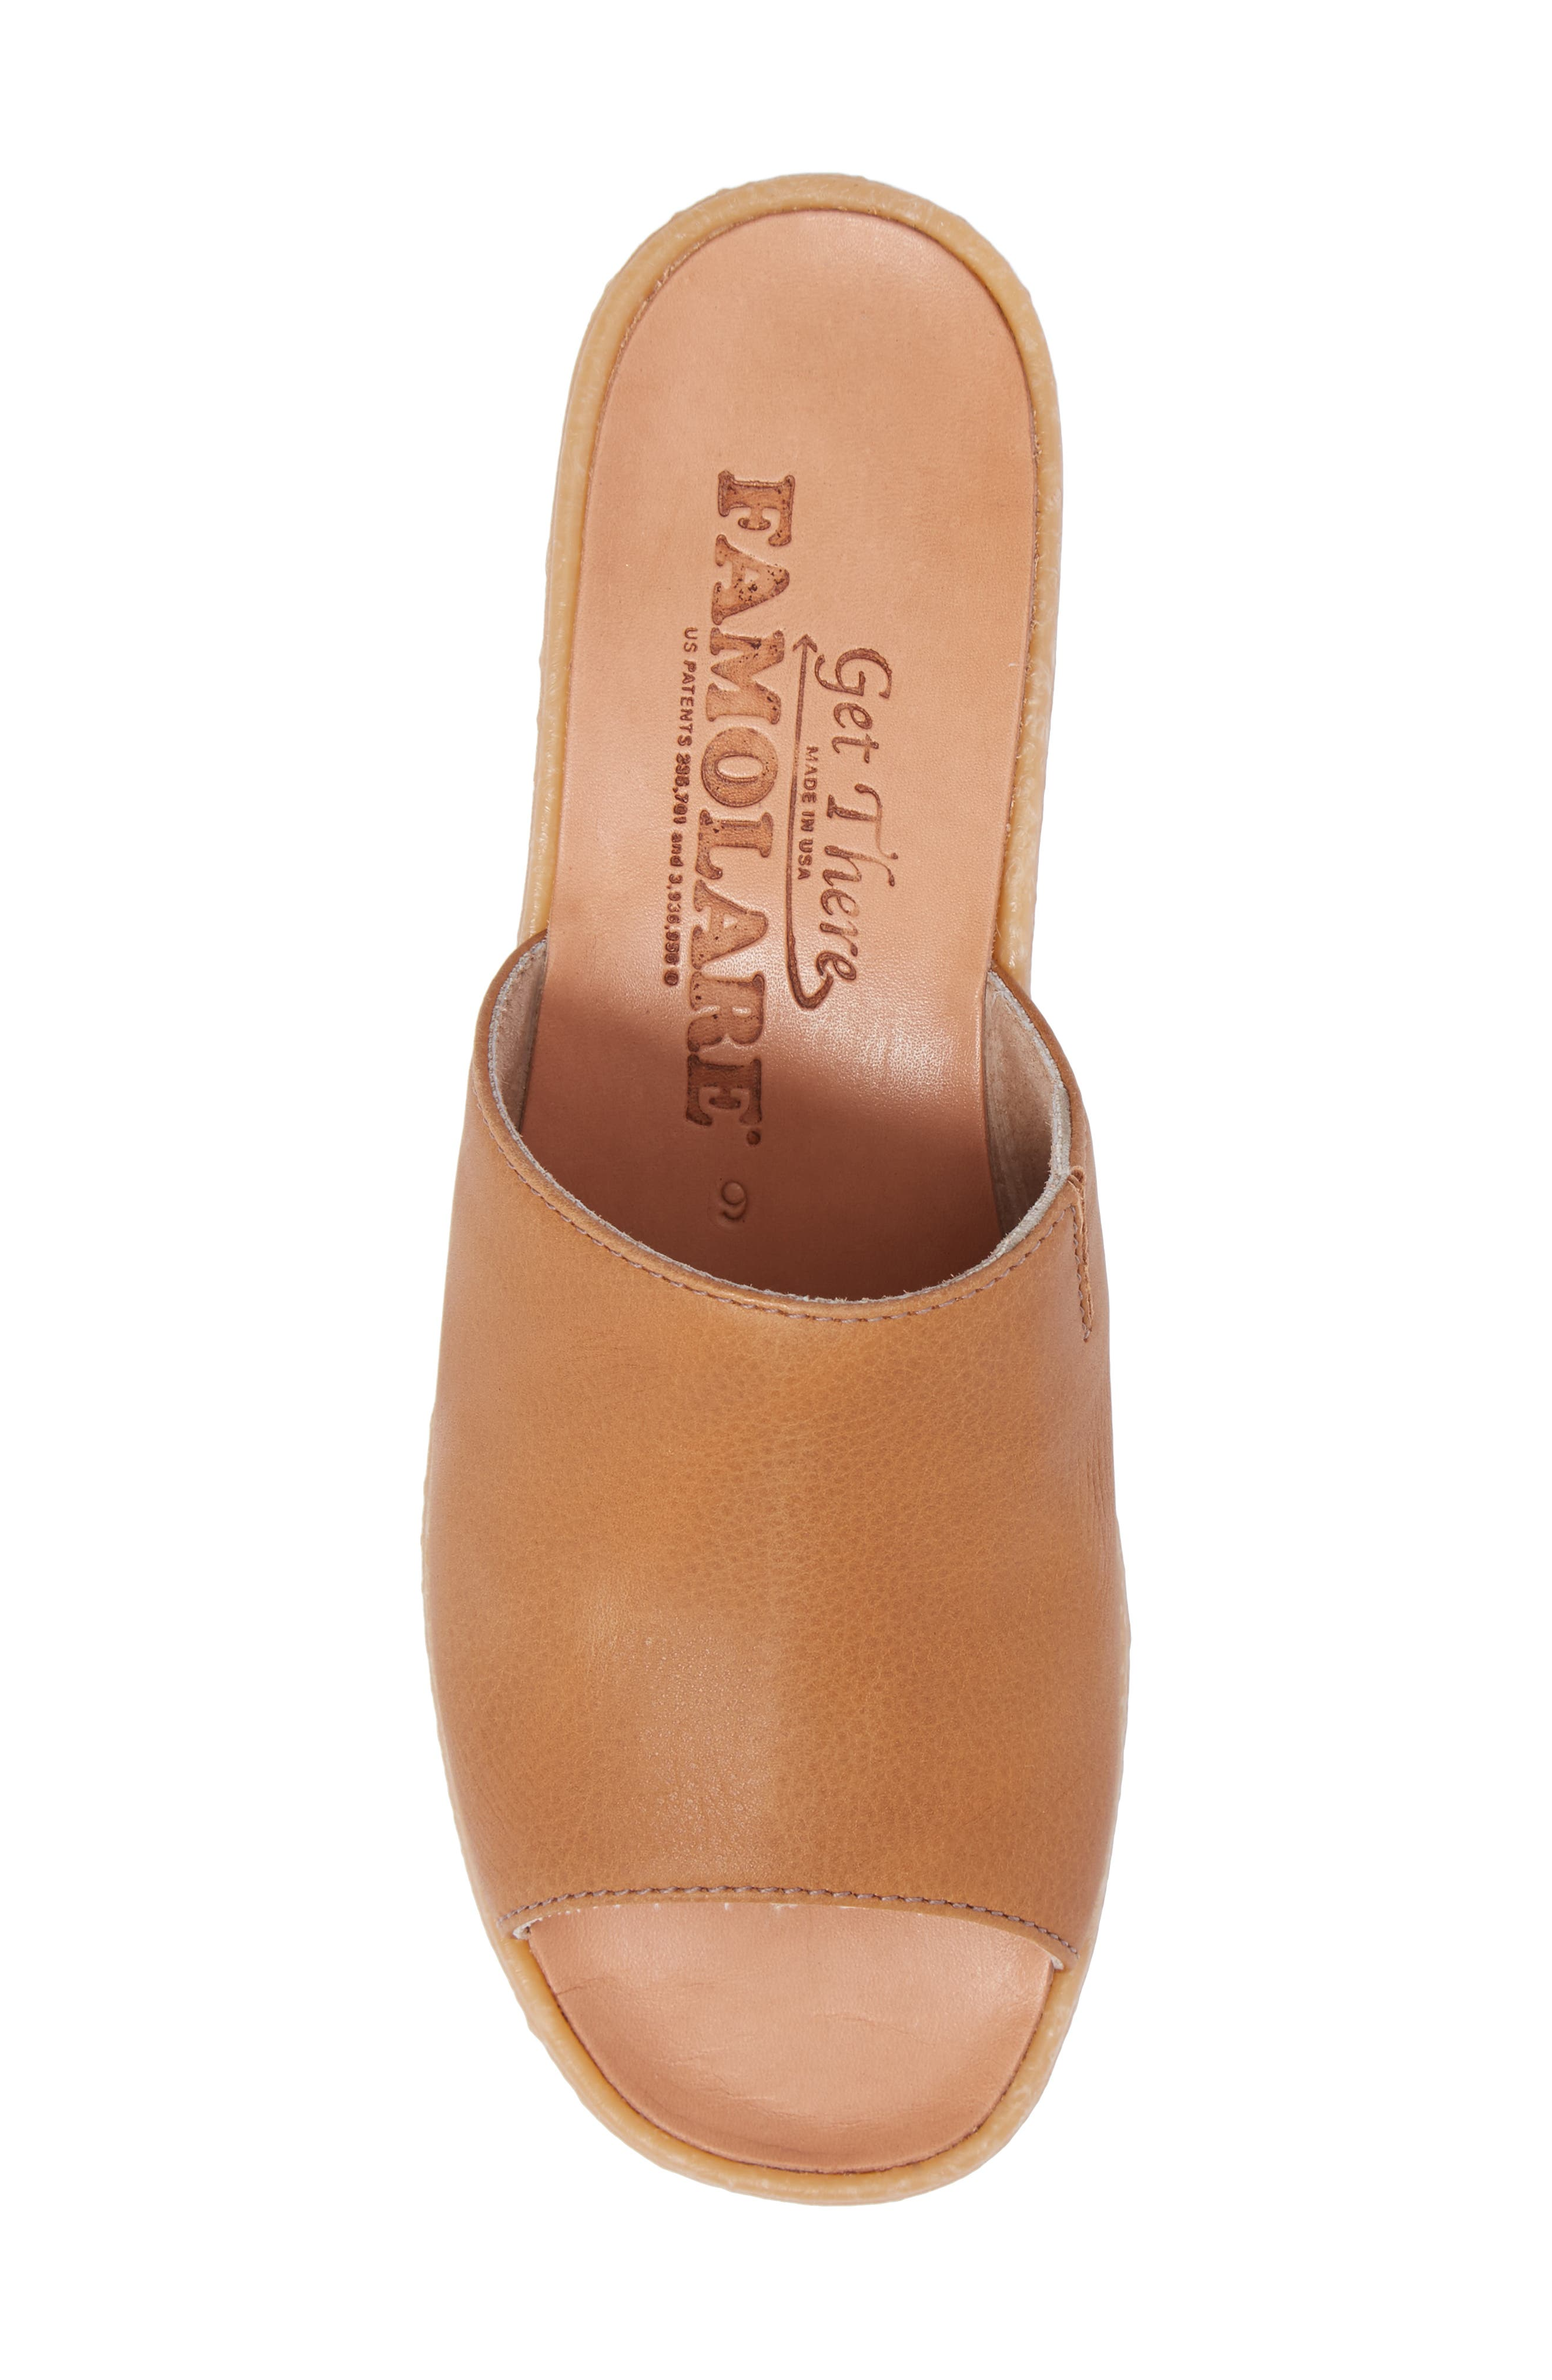 Slide N Sleek Wedge Slide Sandal,                             Alternate thumbnail 5, color,                             COGNAC LEATHER